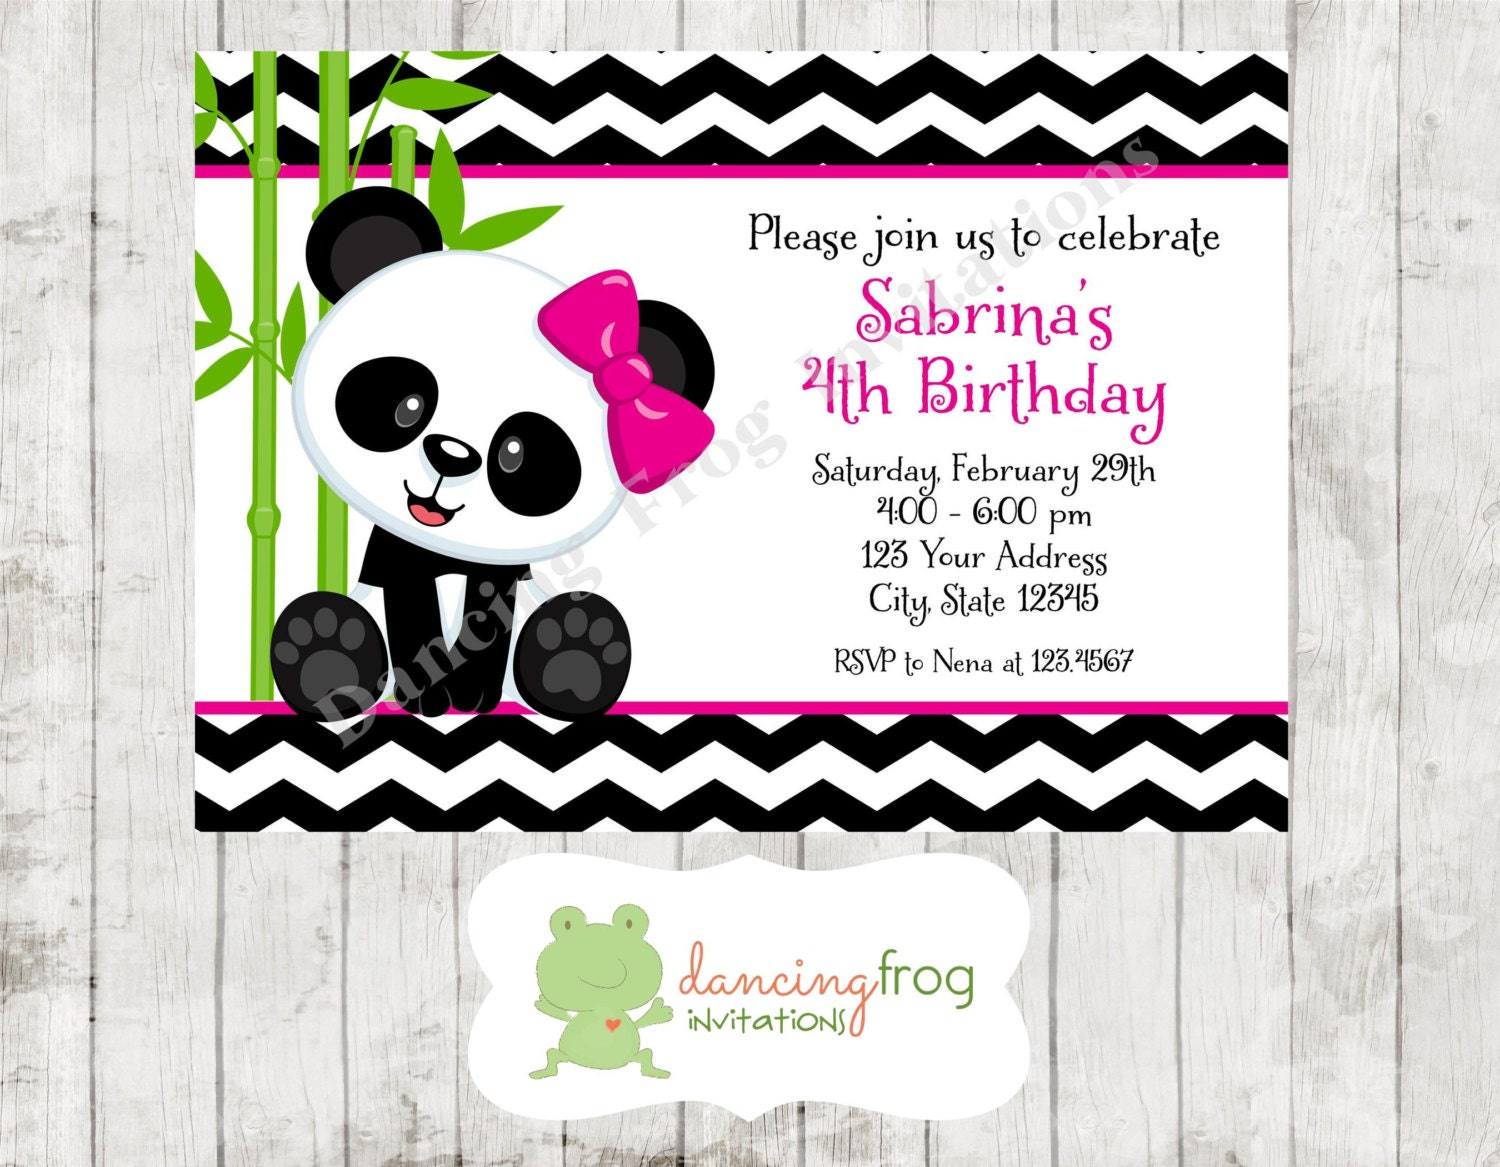 Party Invites Online was amazing invitations ideas